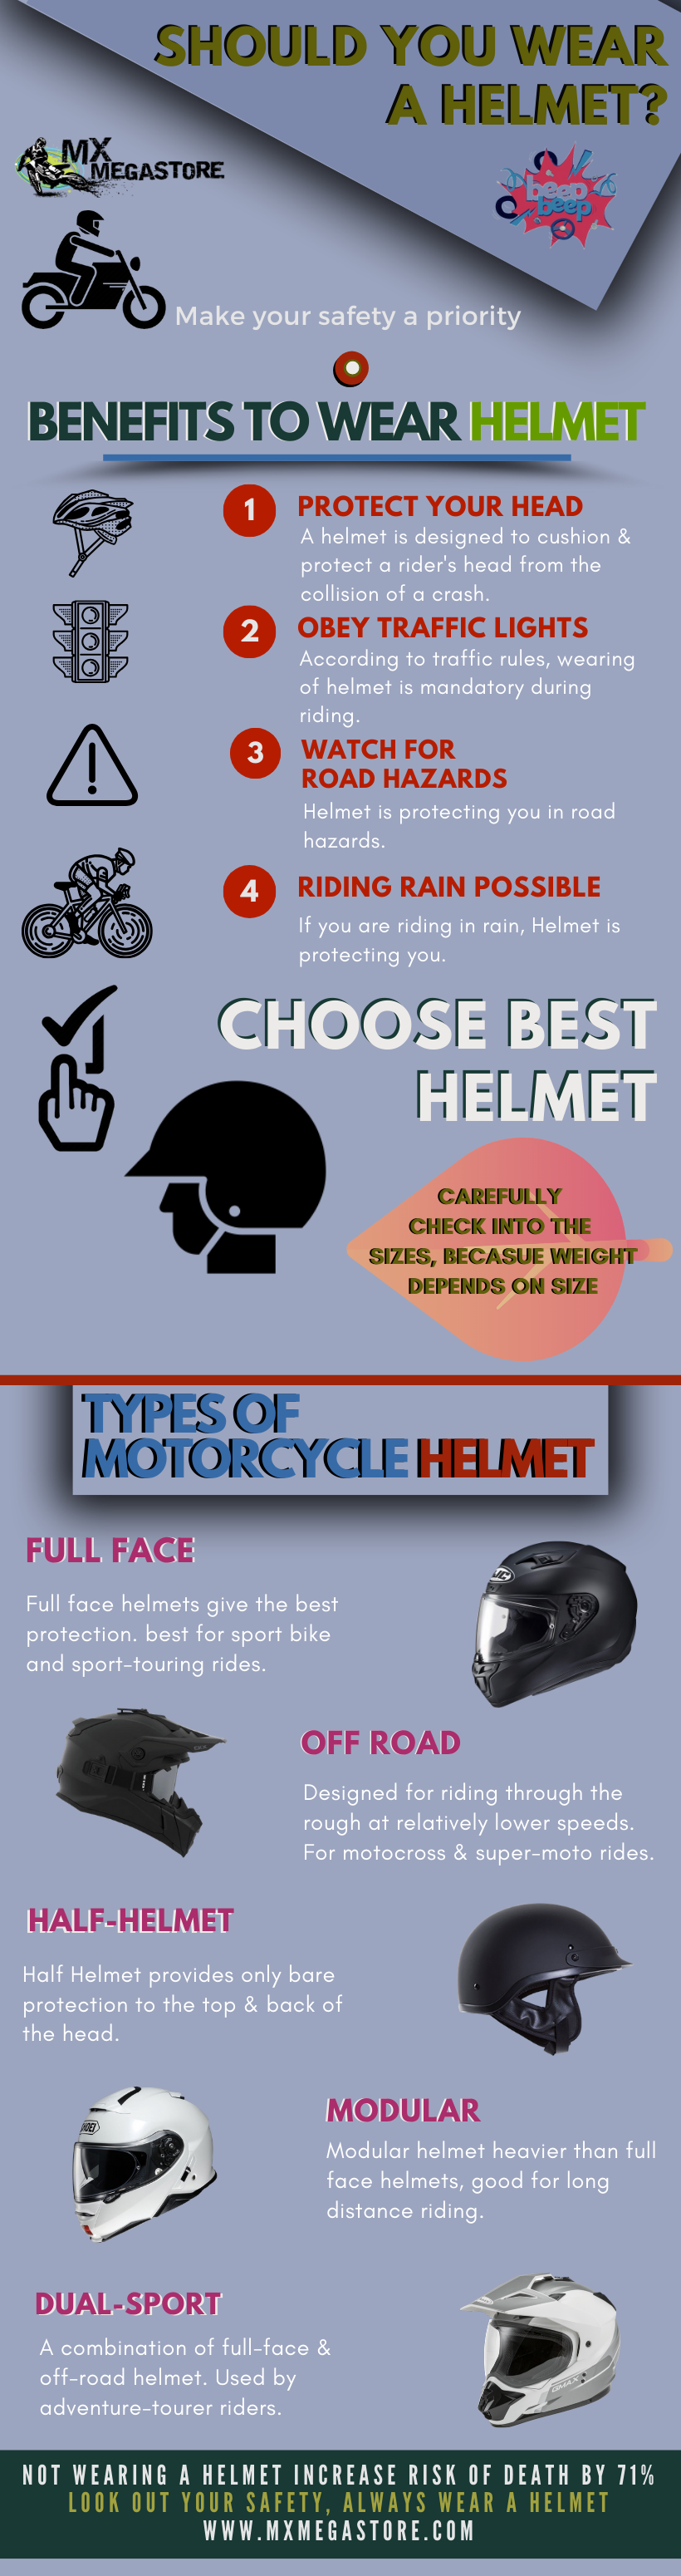 Should You Wear Helmet? Check Now for Benefits of Helmet